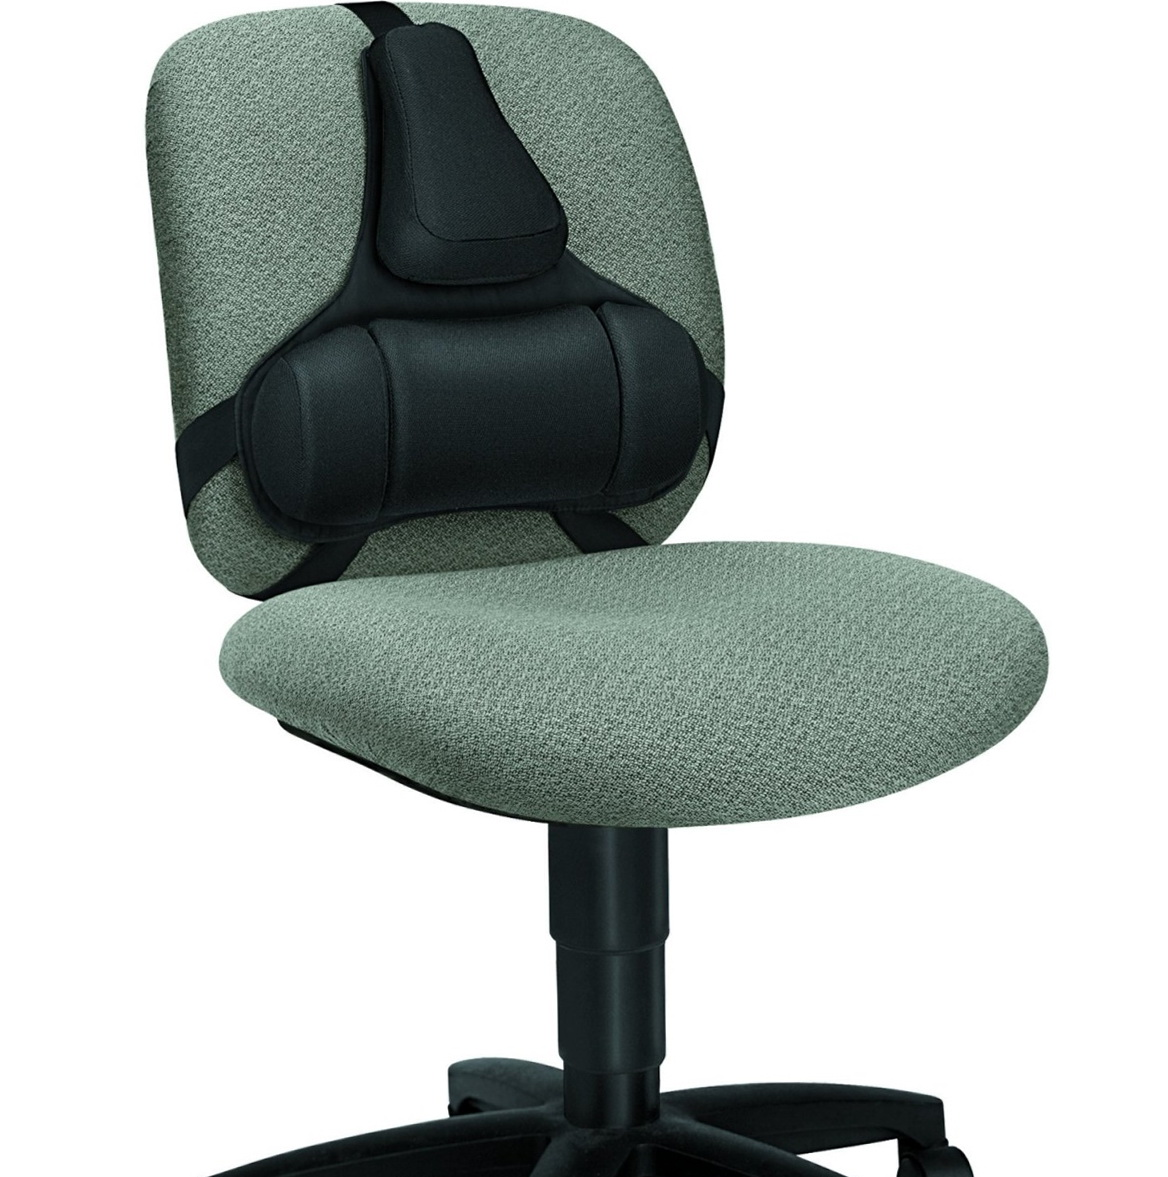 Seat Cushion For Office Chair Back Pain